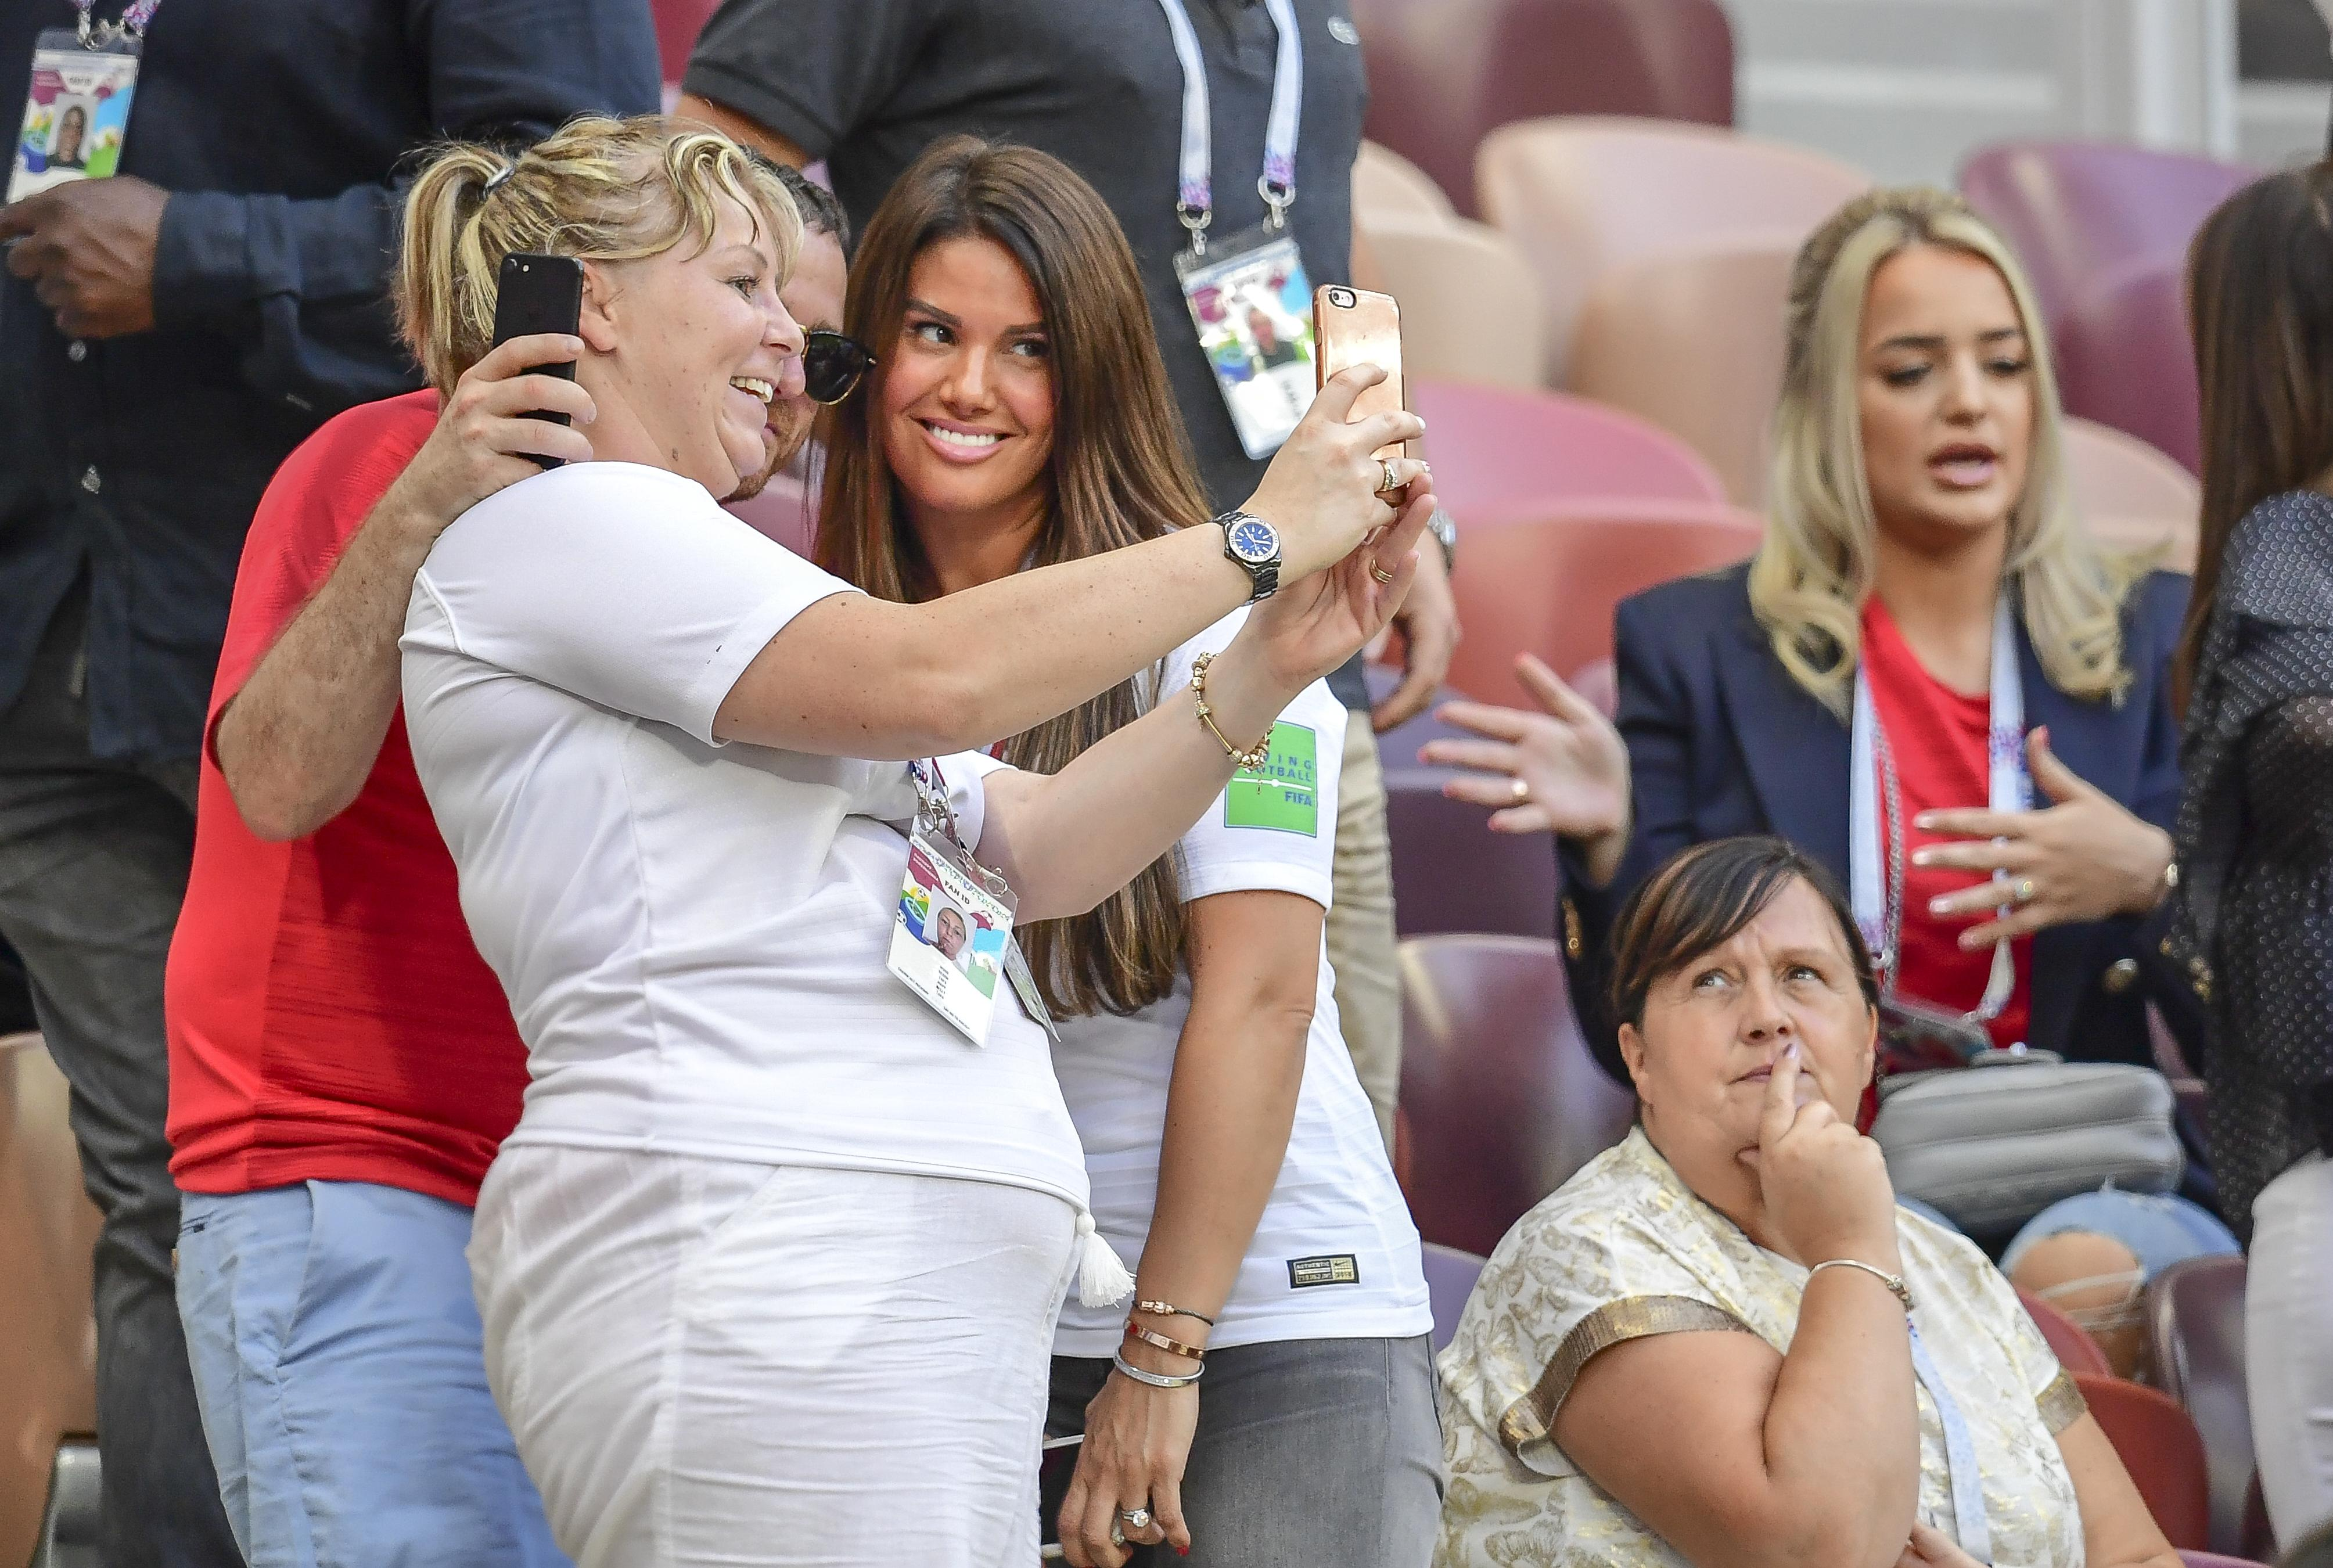 England's footballers enjoyed time with their partners during the 2018 World Cup in Russia - like Jamie Vardy with wife Rebekah (pictured)